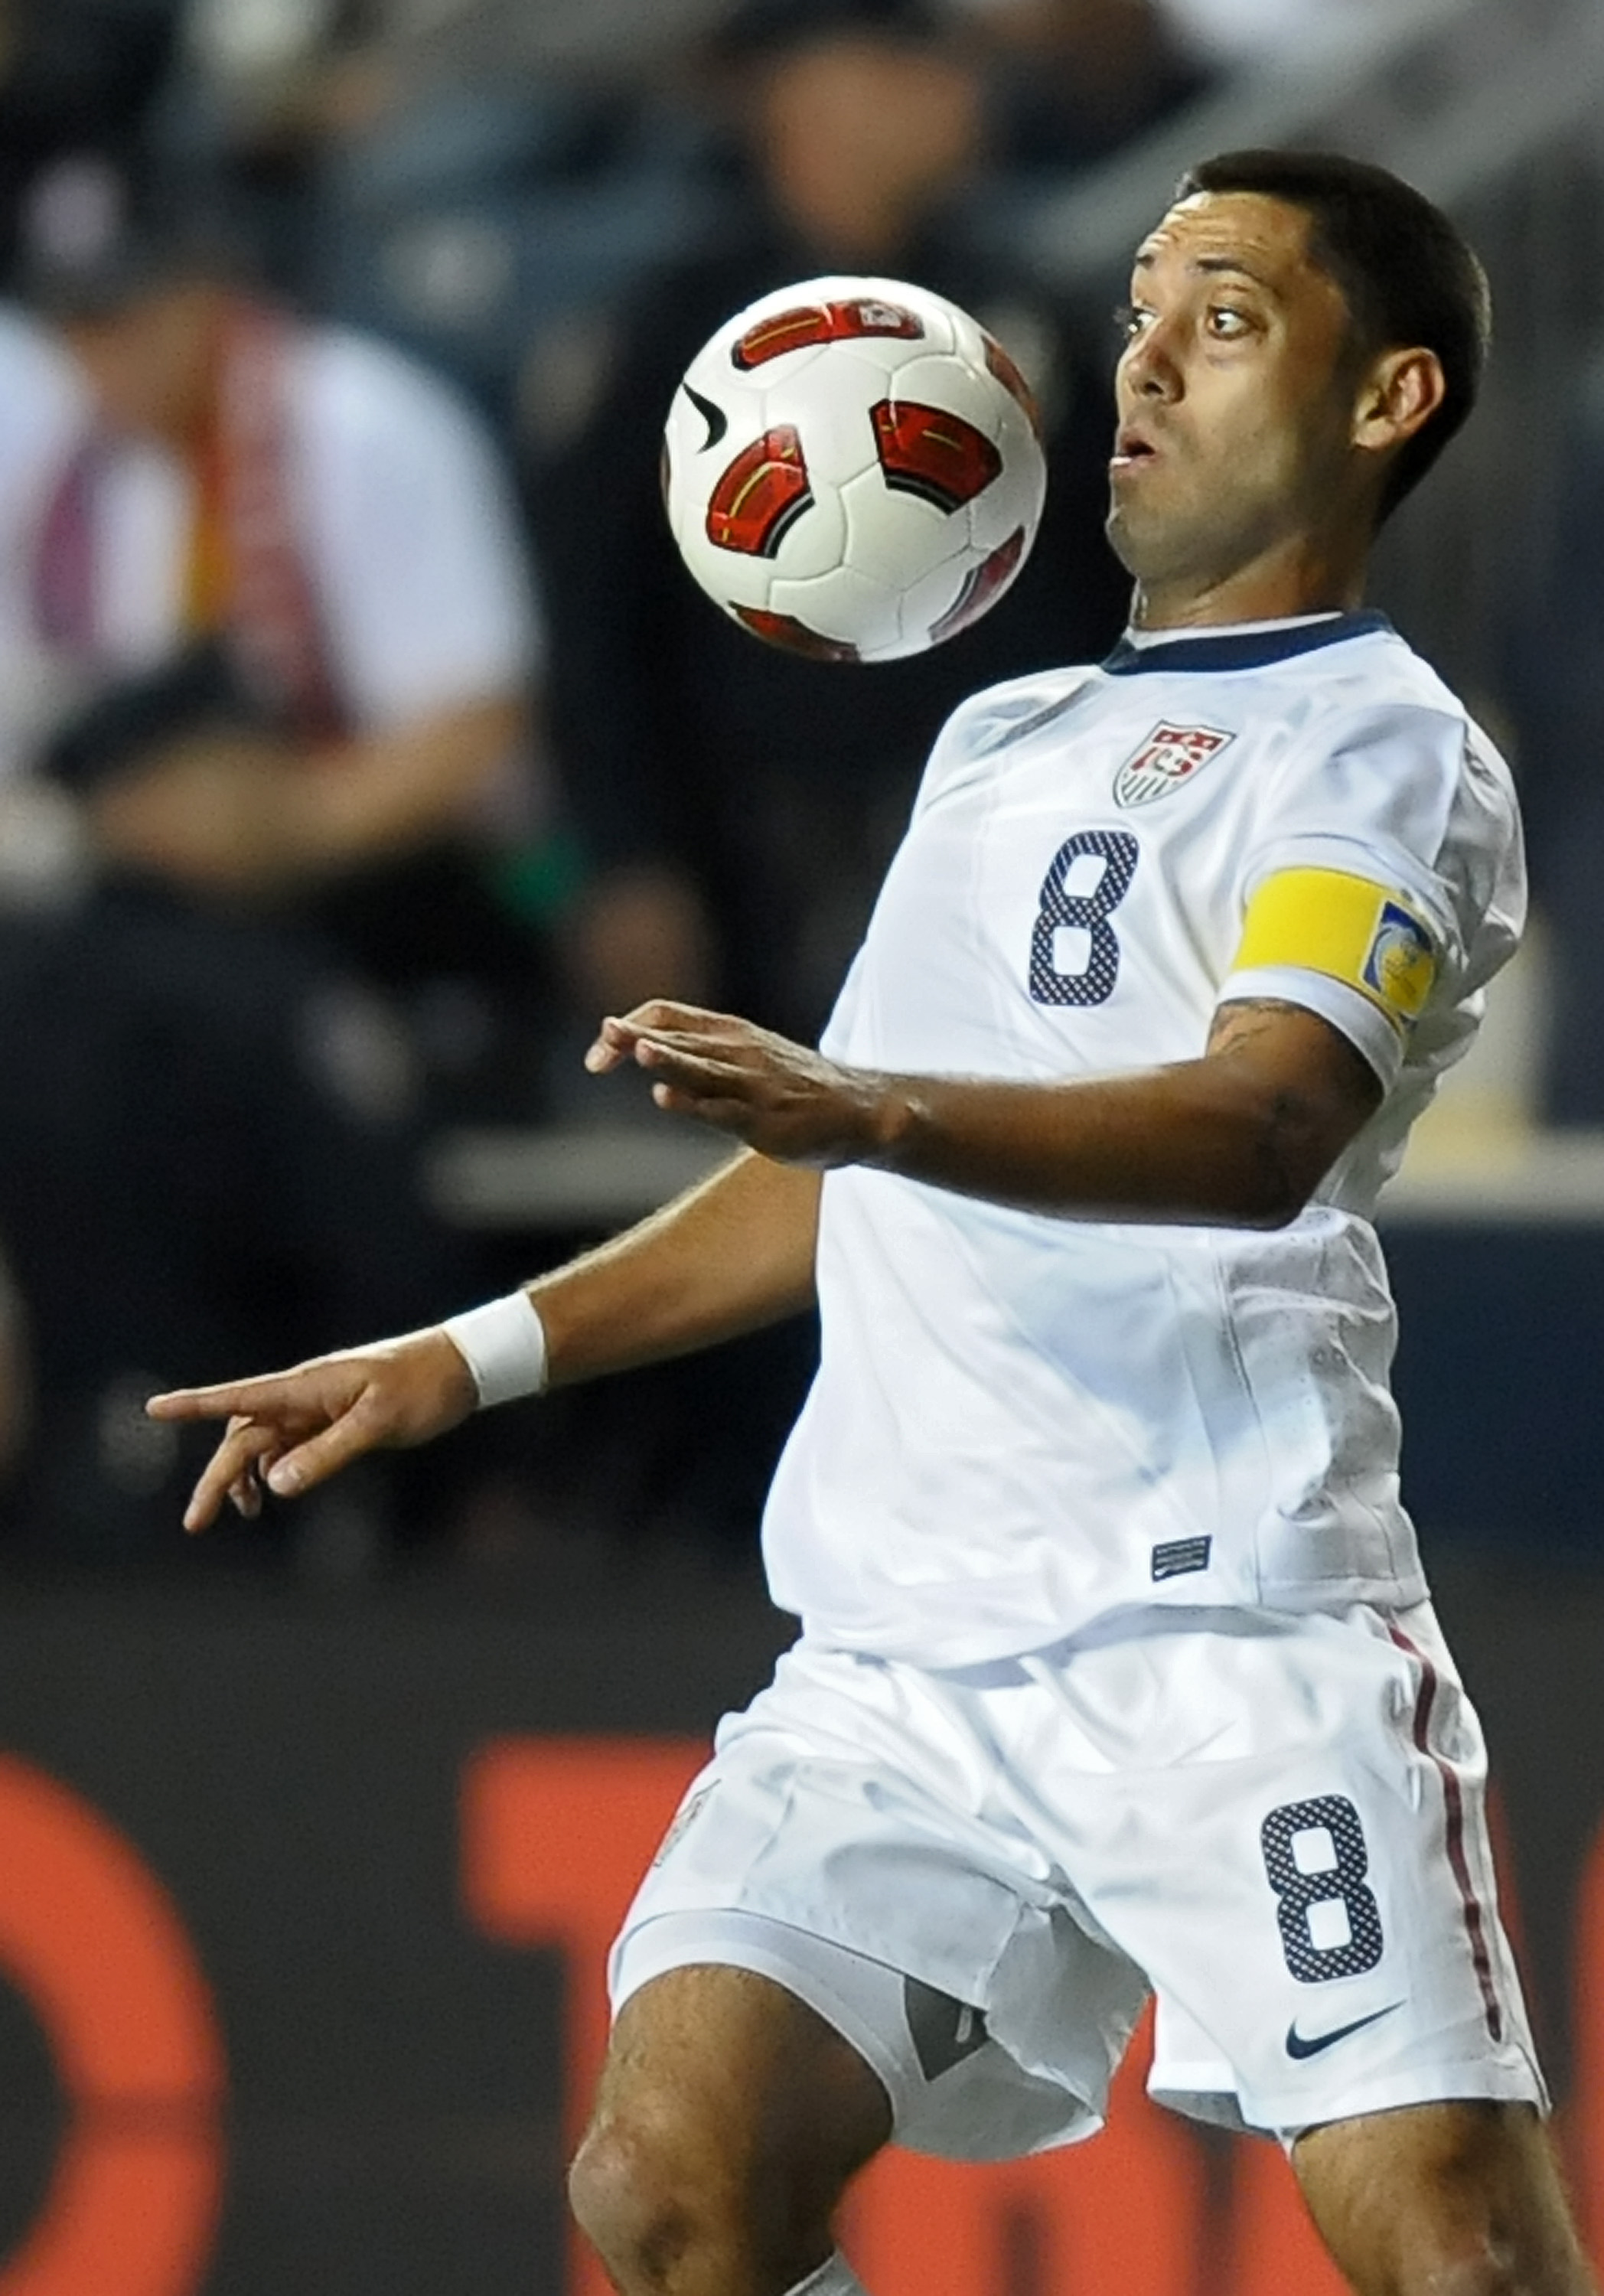 CHESTER, PA - OCTOBER 12: Clint Dempsey #8 of the United States keeps his eye on the ball during the game against Colombia at PPL Park on October 12, 2010 in Chester, Pennsylvania. The game ended in a 0-0 tie. (Photo by Drew Hallowell/Getty Images)